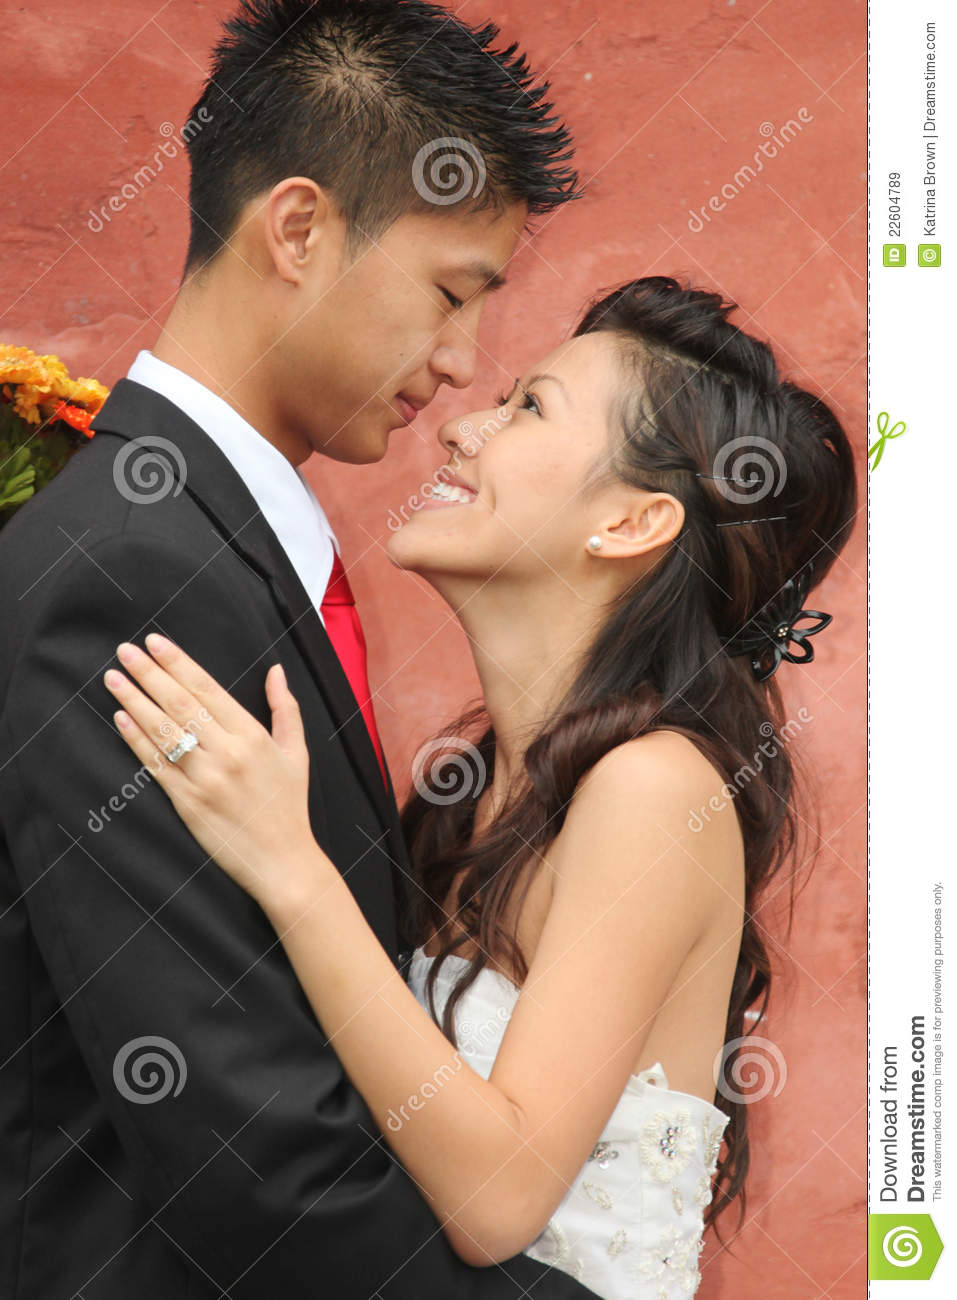 archibald asian singles Elitesingles is the market leader for professional dating join today to find asian singles looking for serious, committed relationships in your area.